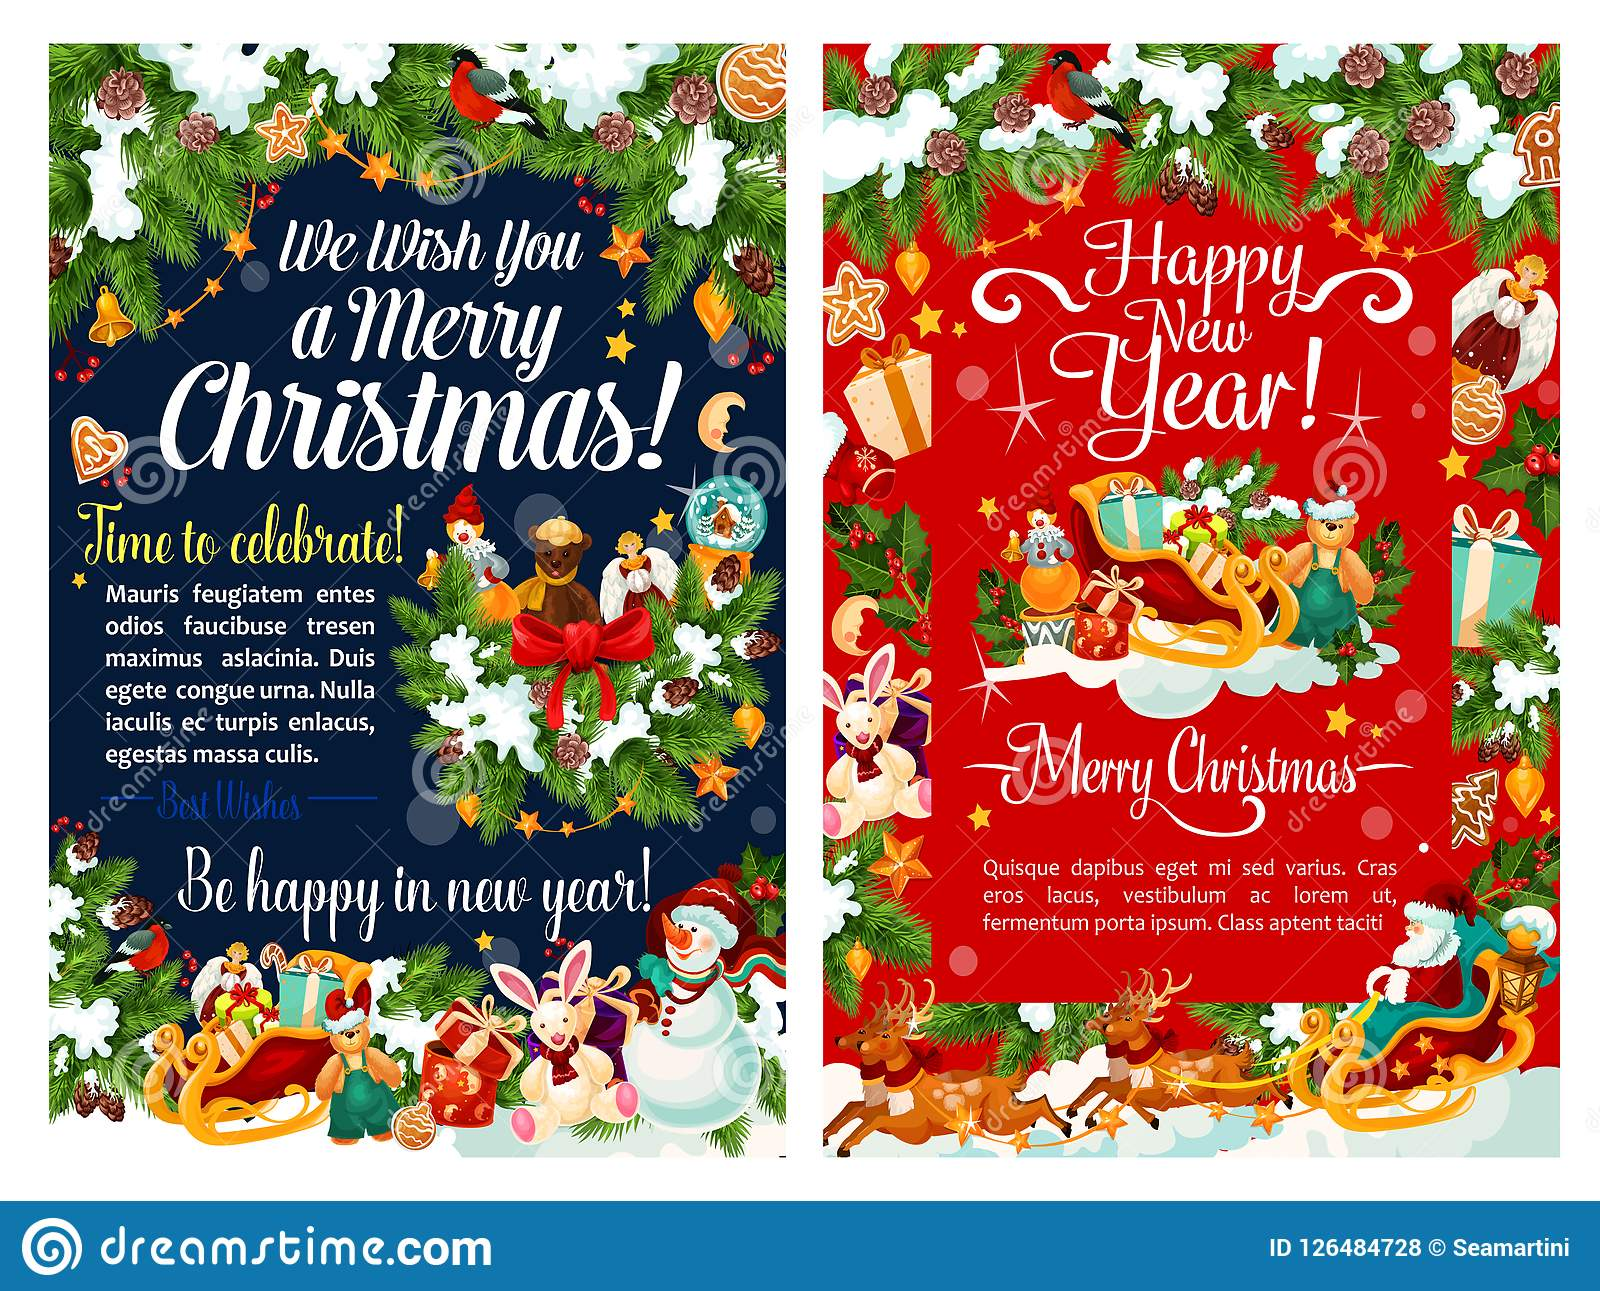 Santa Sleigh With Gift And Snowman Christmas Card Stock Vector